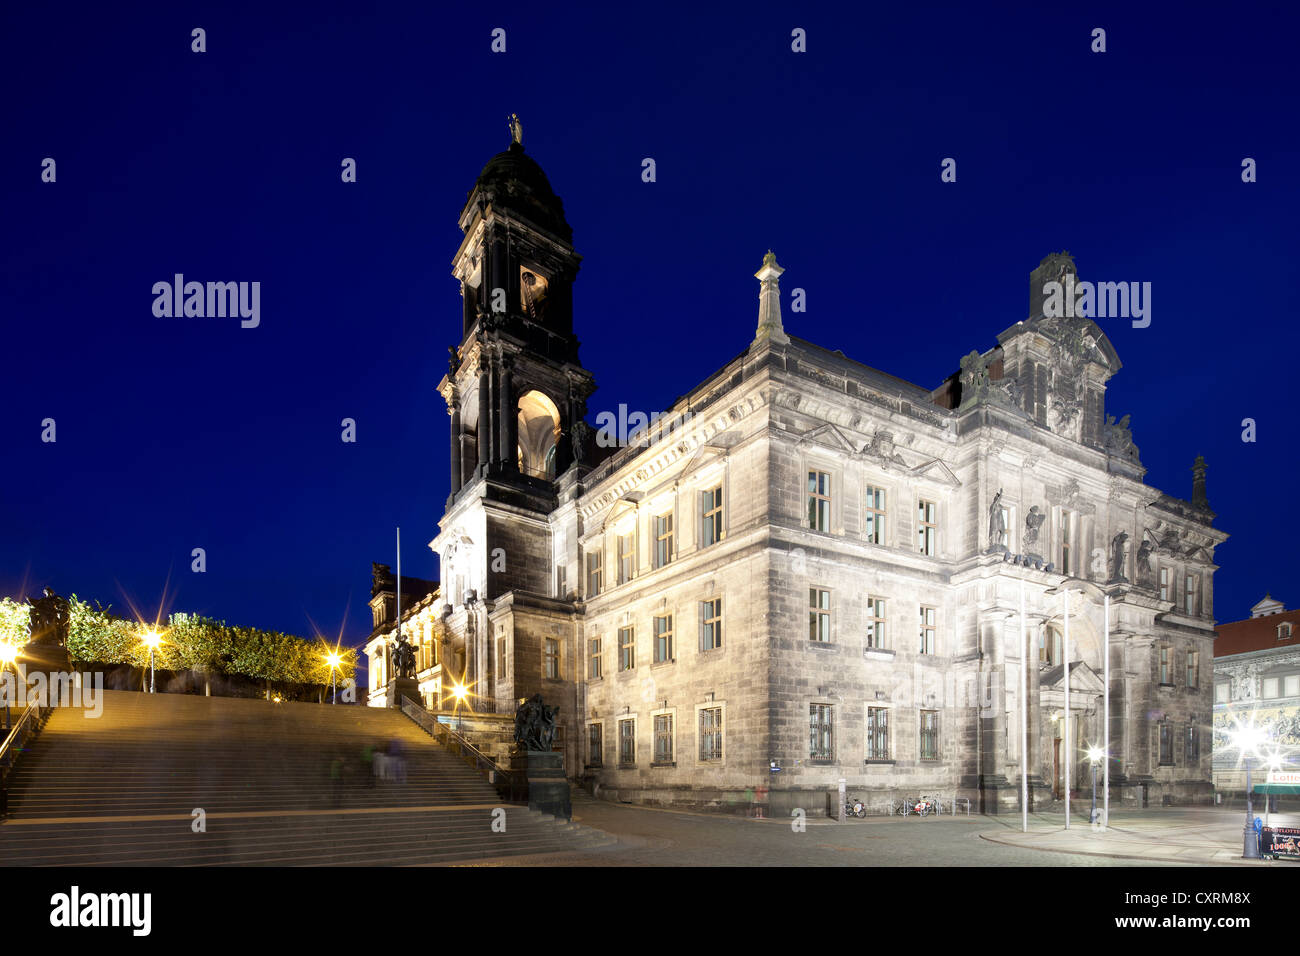 State Conservation Office, Higher Regional Court of Saxony, former Staendeshaus building of Saxony, Dresden, Saxony - Stock Image